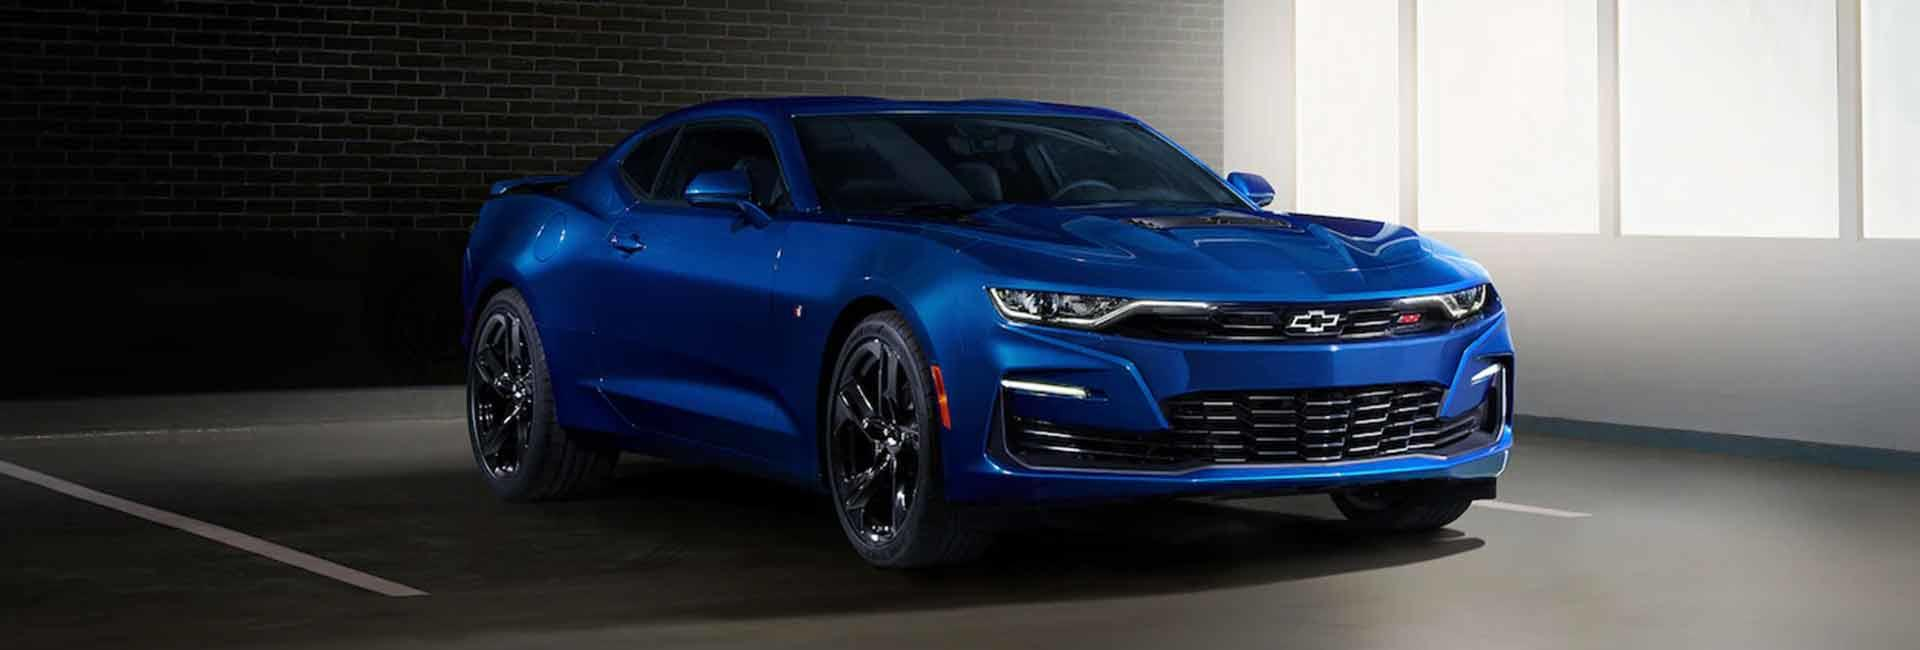 Angled side profile of a parked blue Chevrolet Camaro